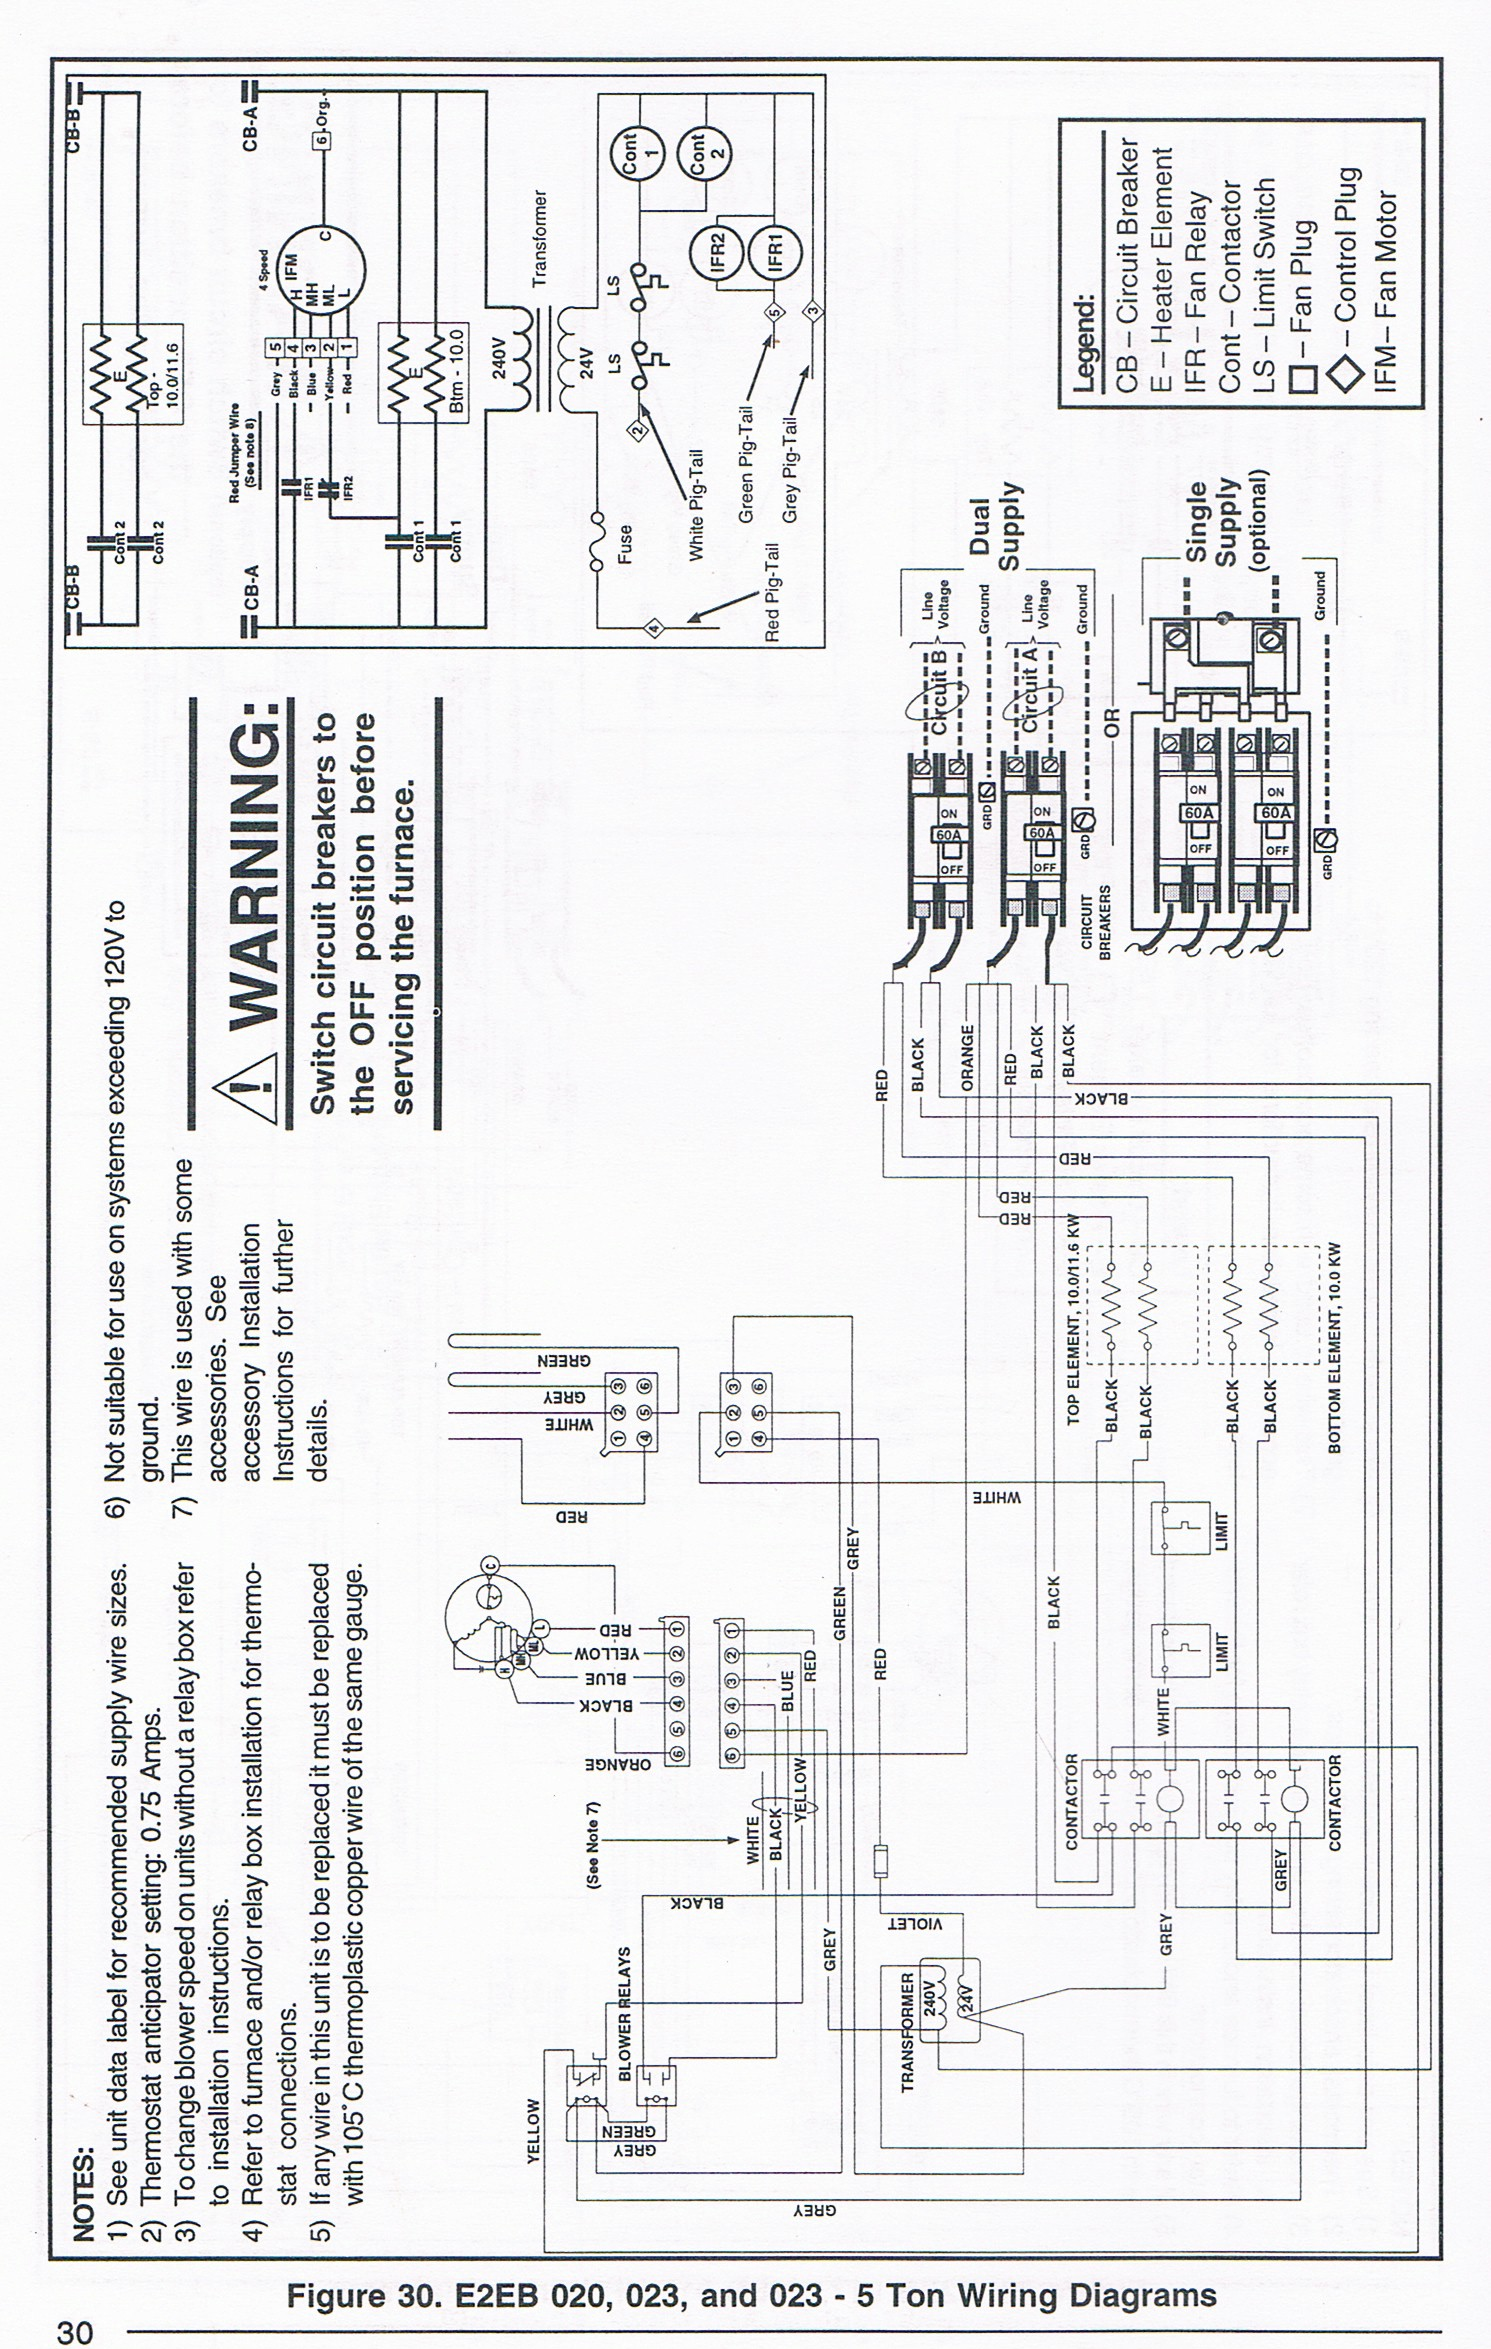 I Have A Nordyne E2eb 5 Ton Blower And The Motor Went Out Wiring Diagram